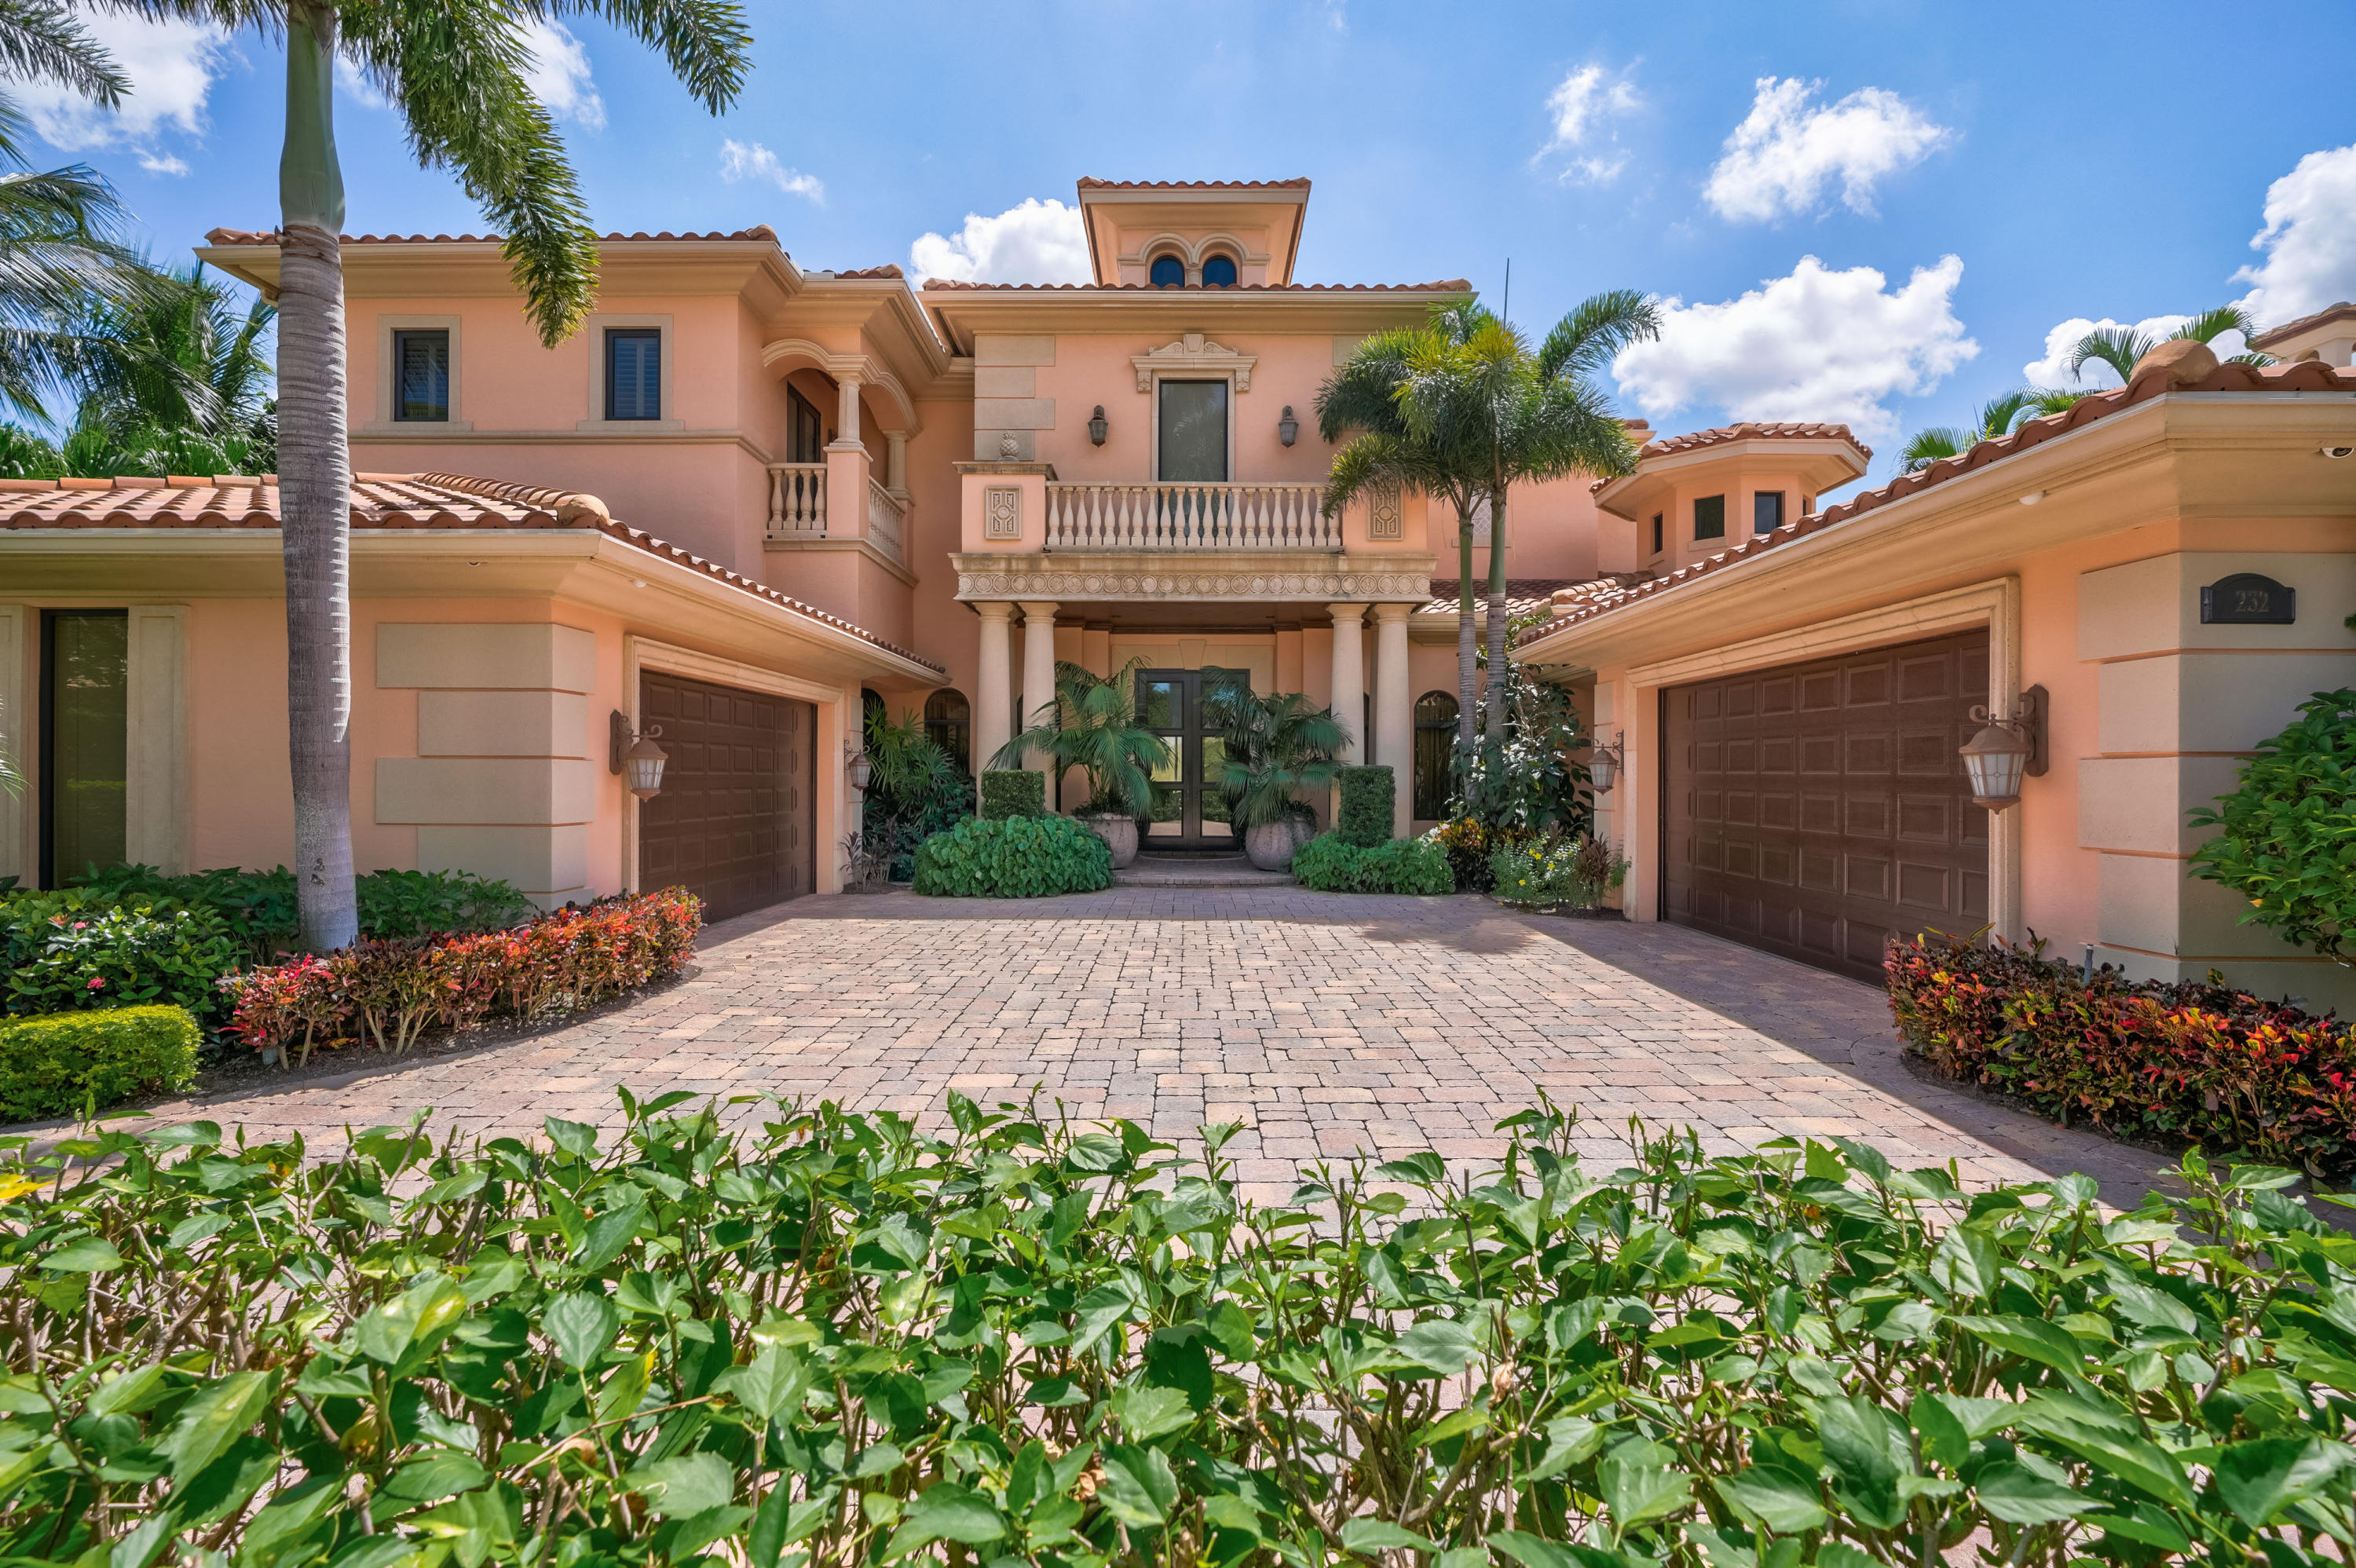 New Home for sale at 232 Via Palacio  in Palm Beach Gardens